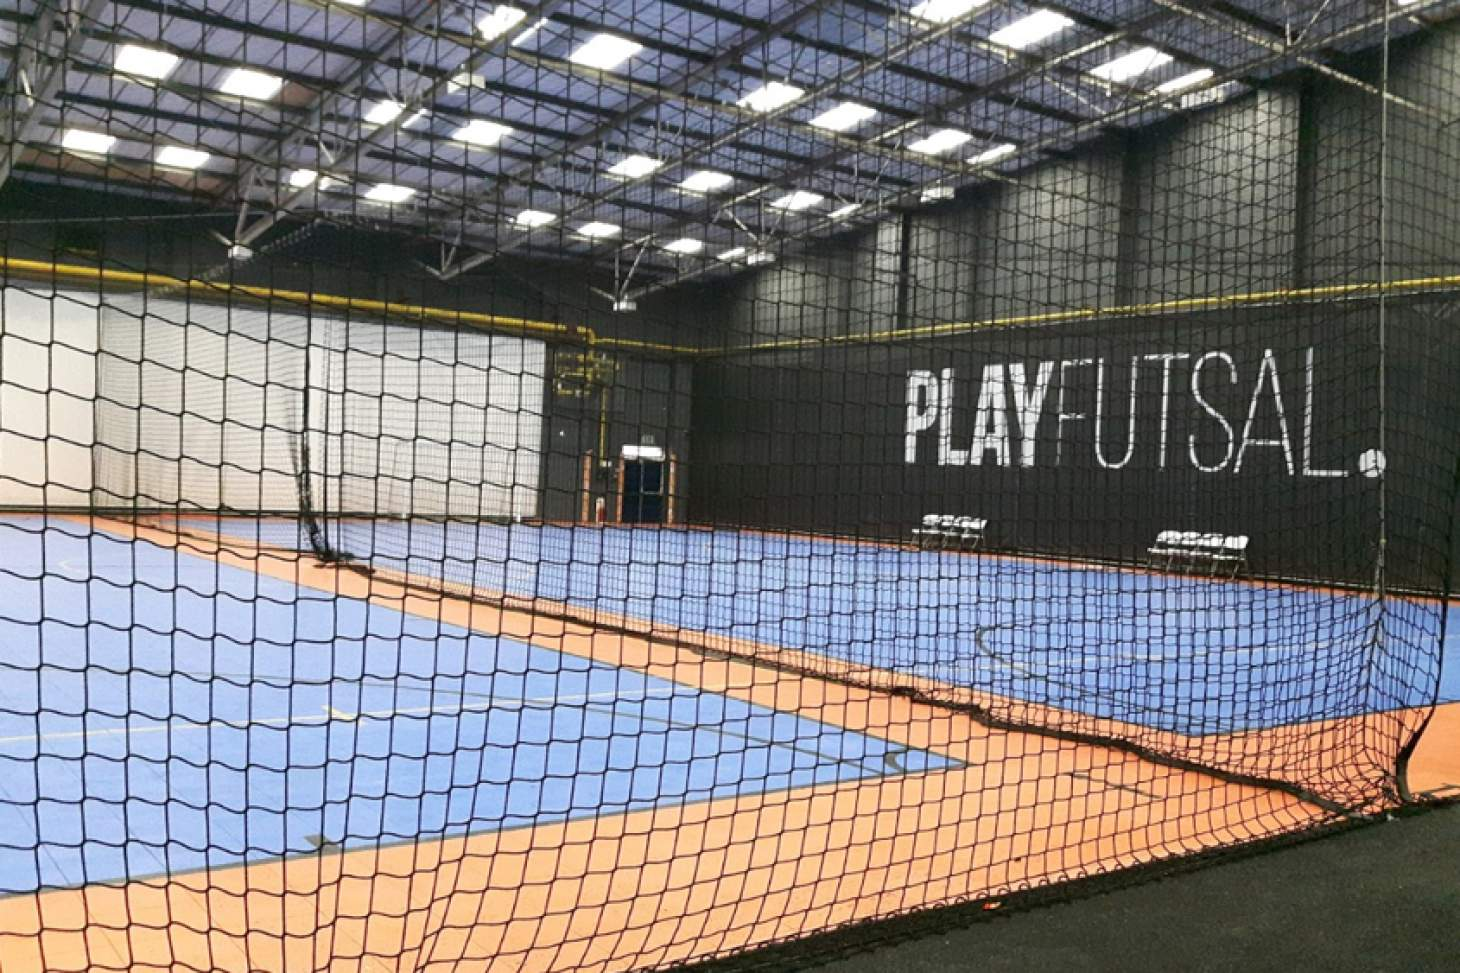 PlayFootball Swindon Indoor futsal pitch